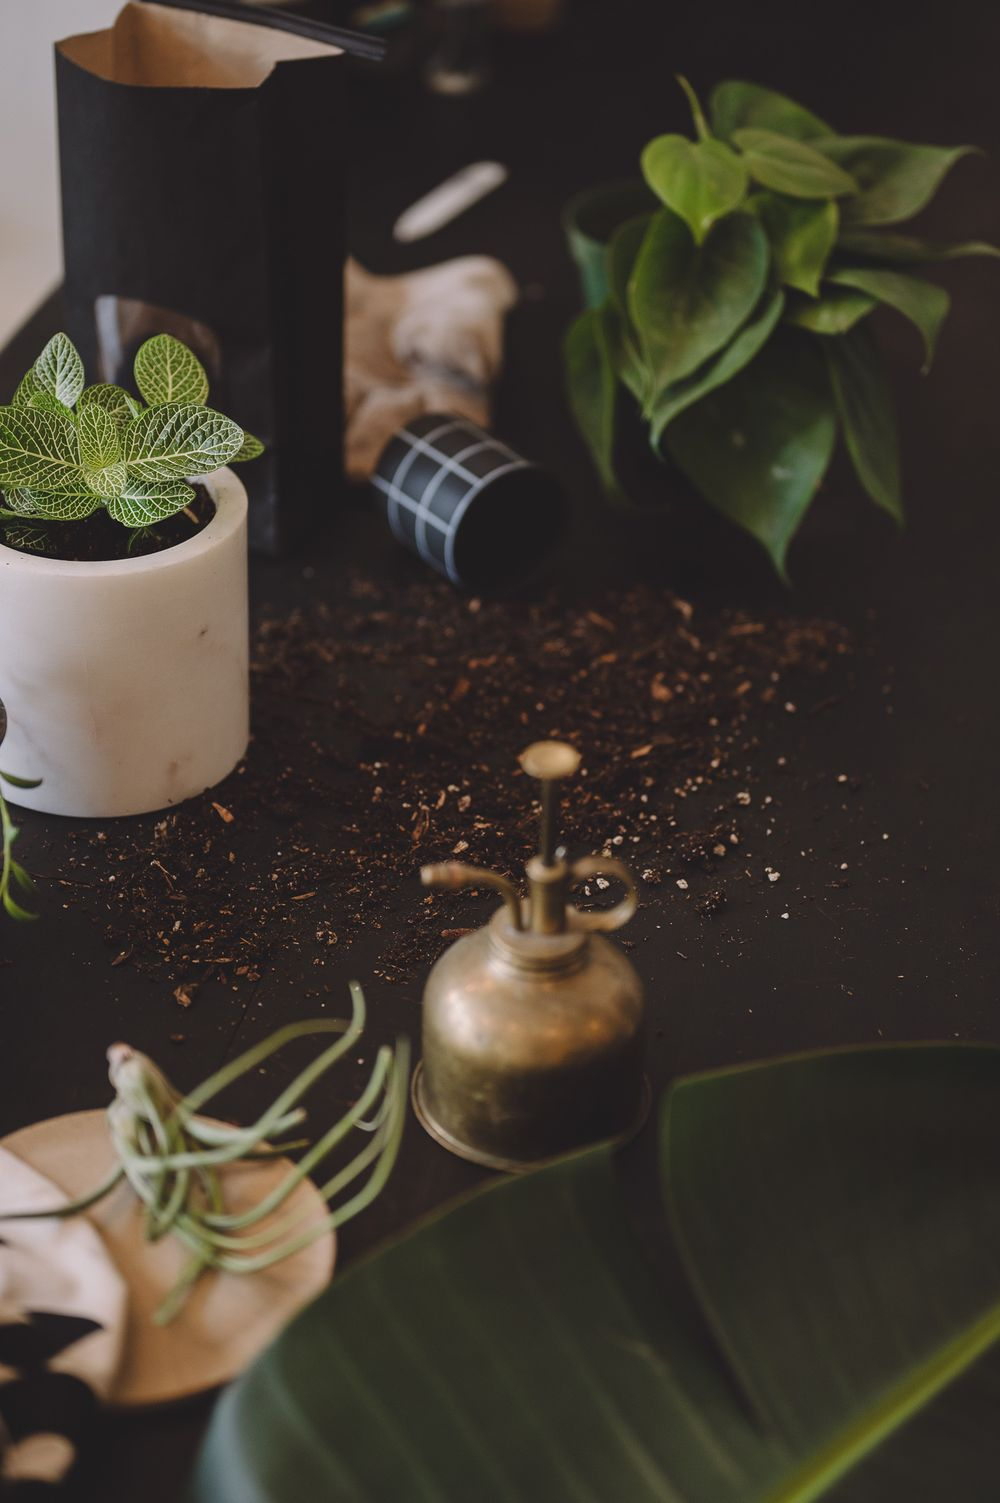 Brand photo by Tiffany Kelterer of plant potting flatlay at Belltown store Fringe in Seattle